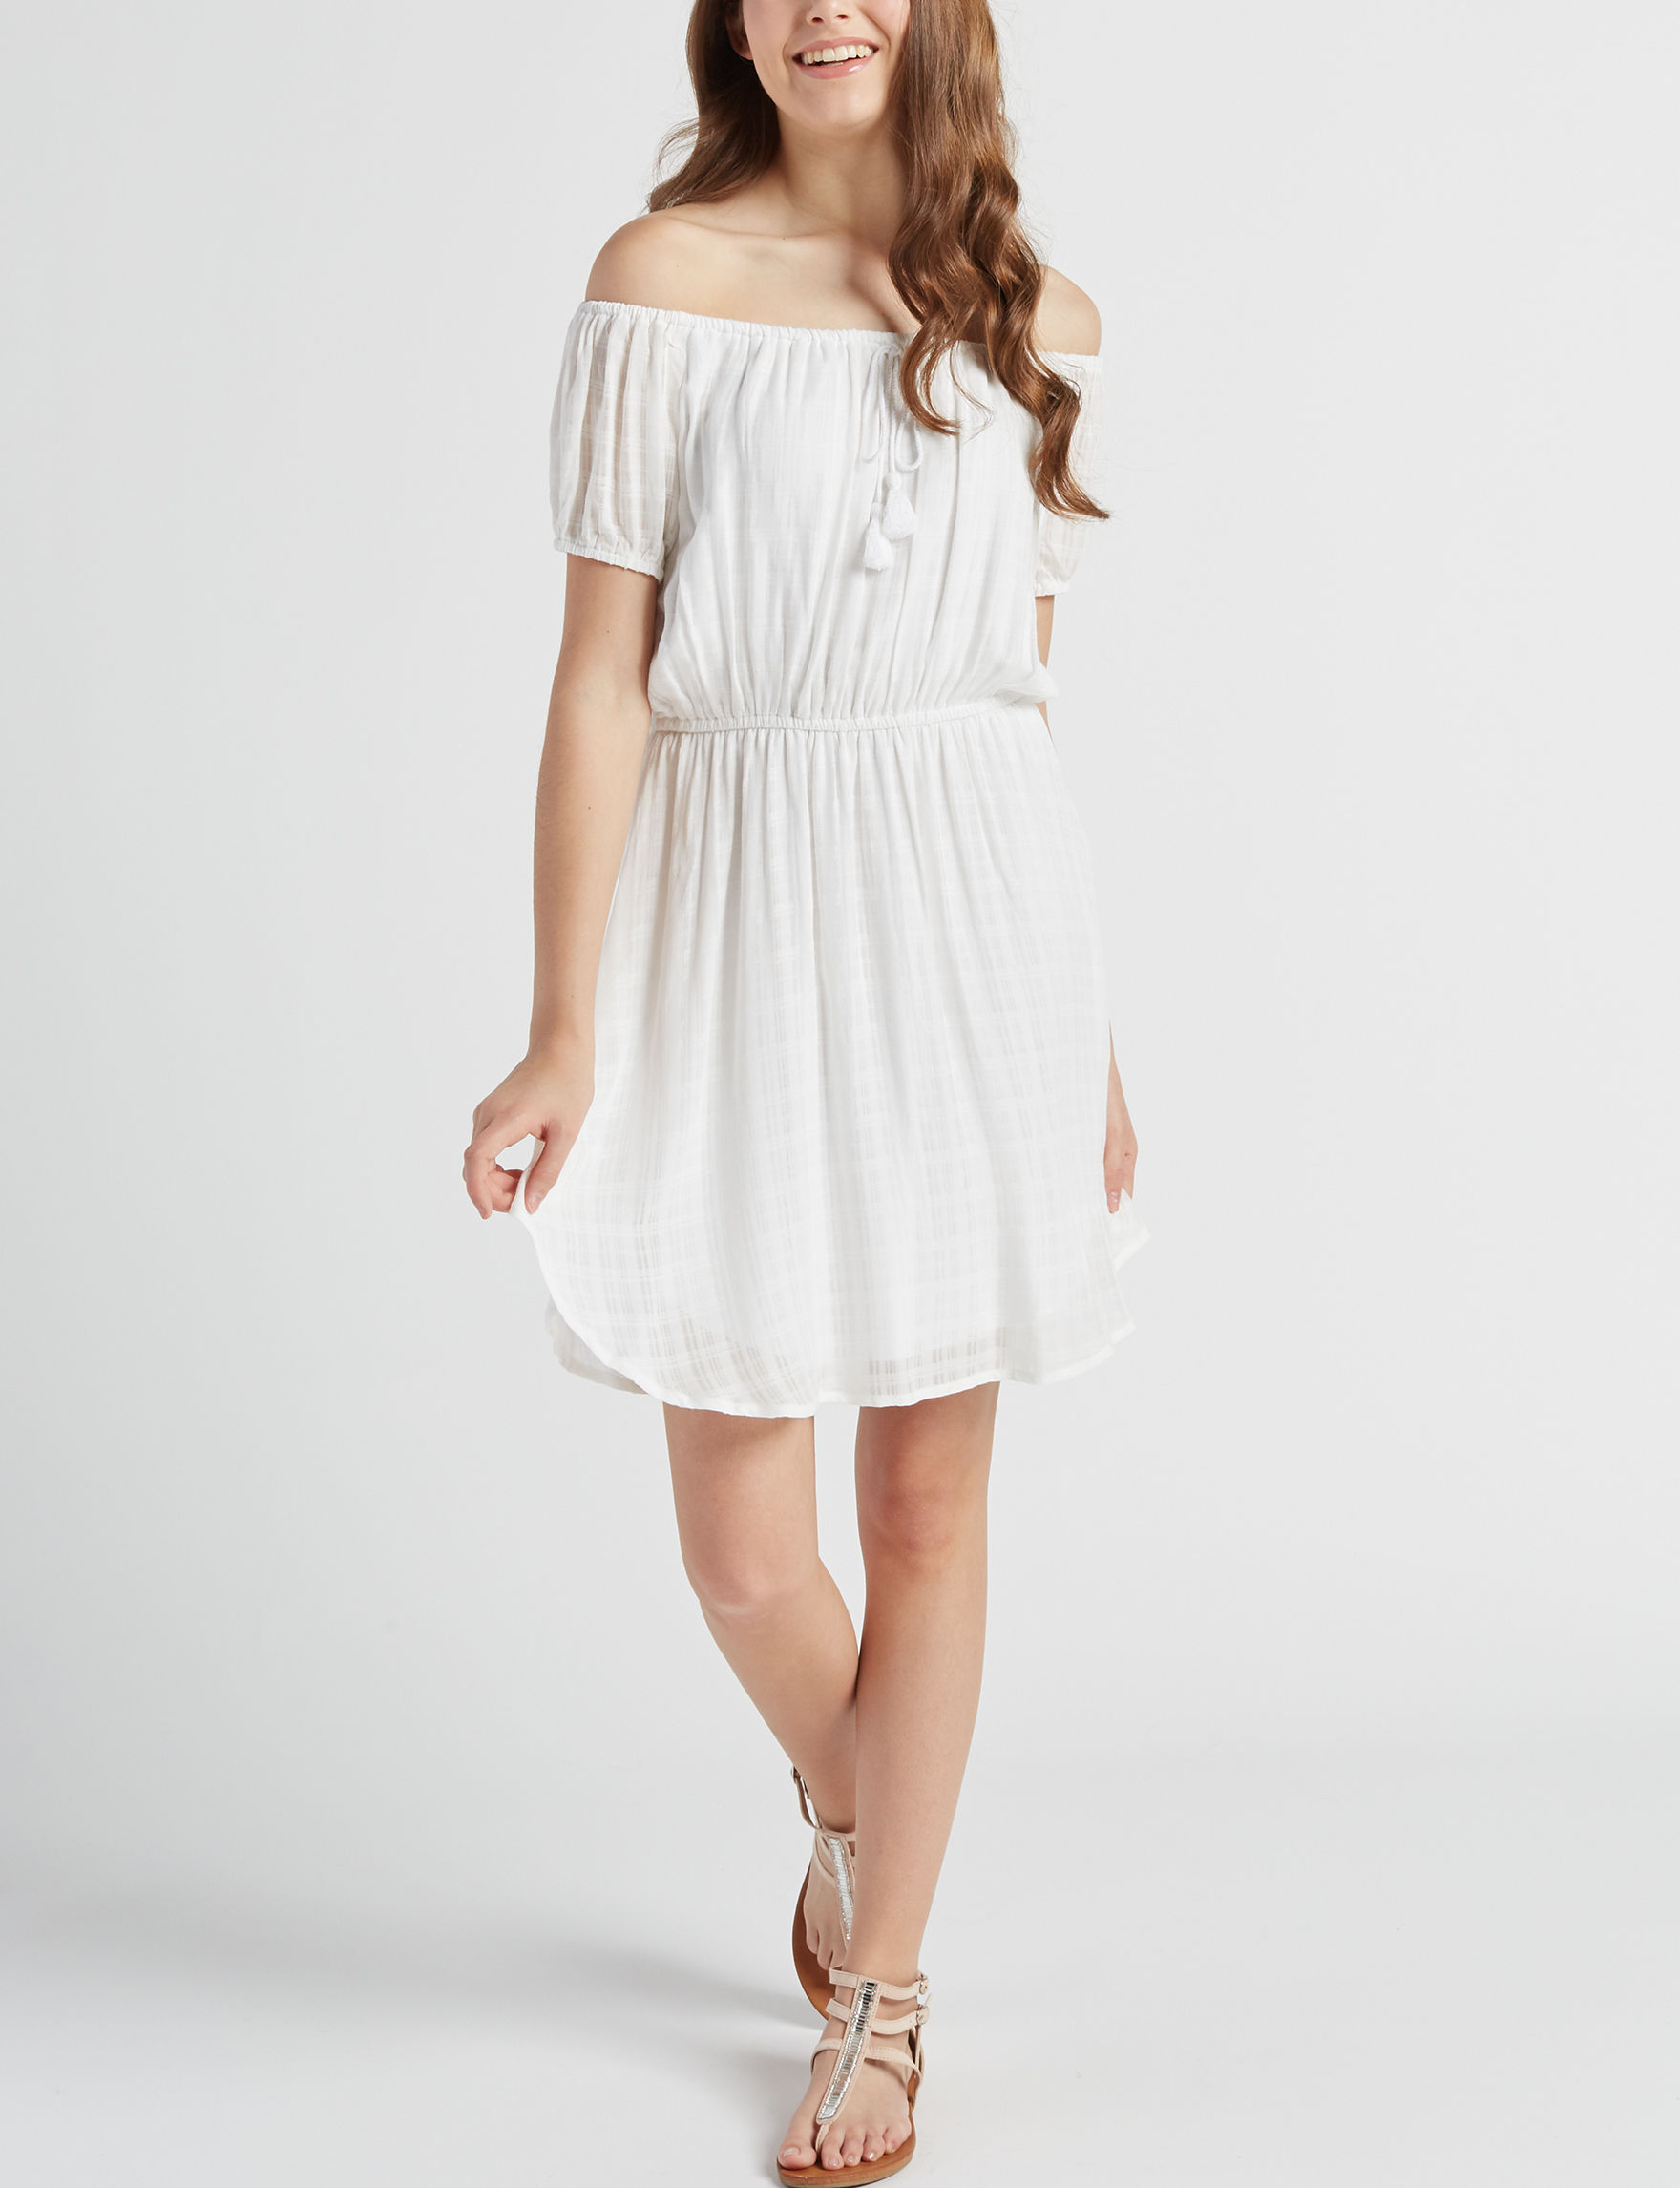 BeBop White Everyday & Casual Fit & Flare Dresses